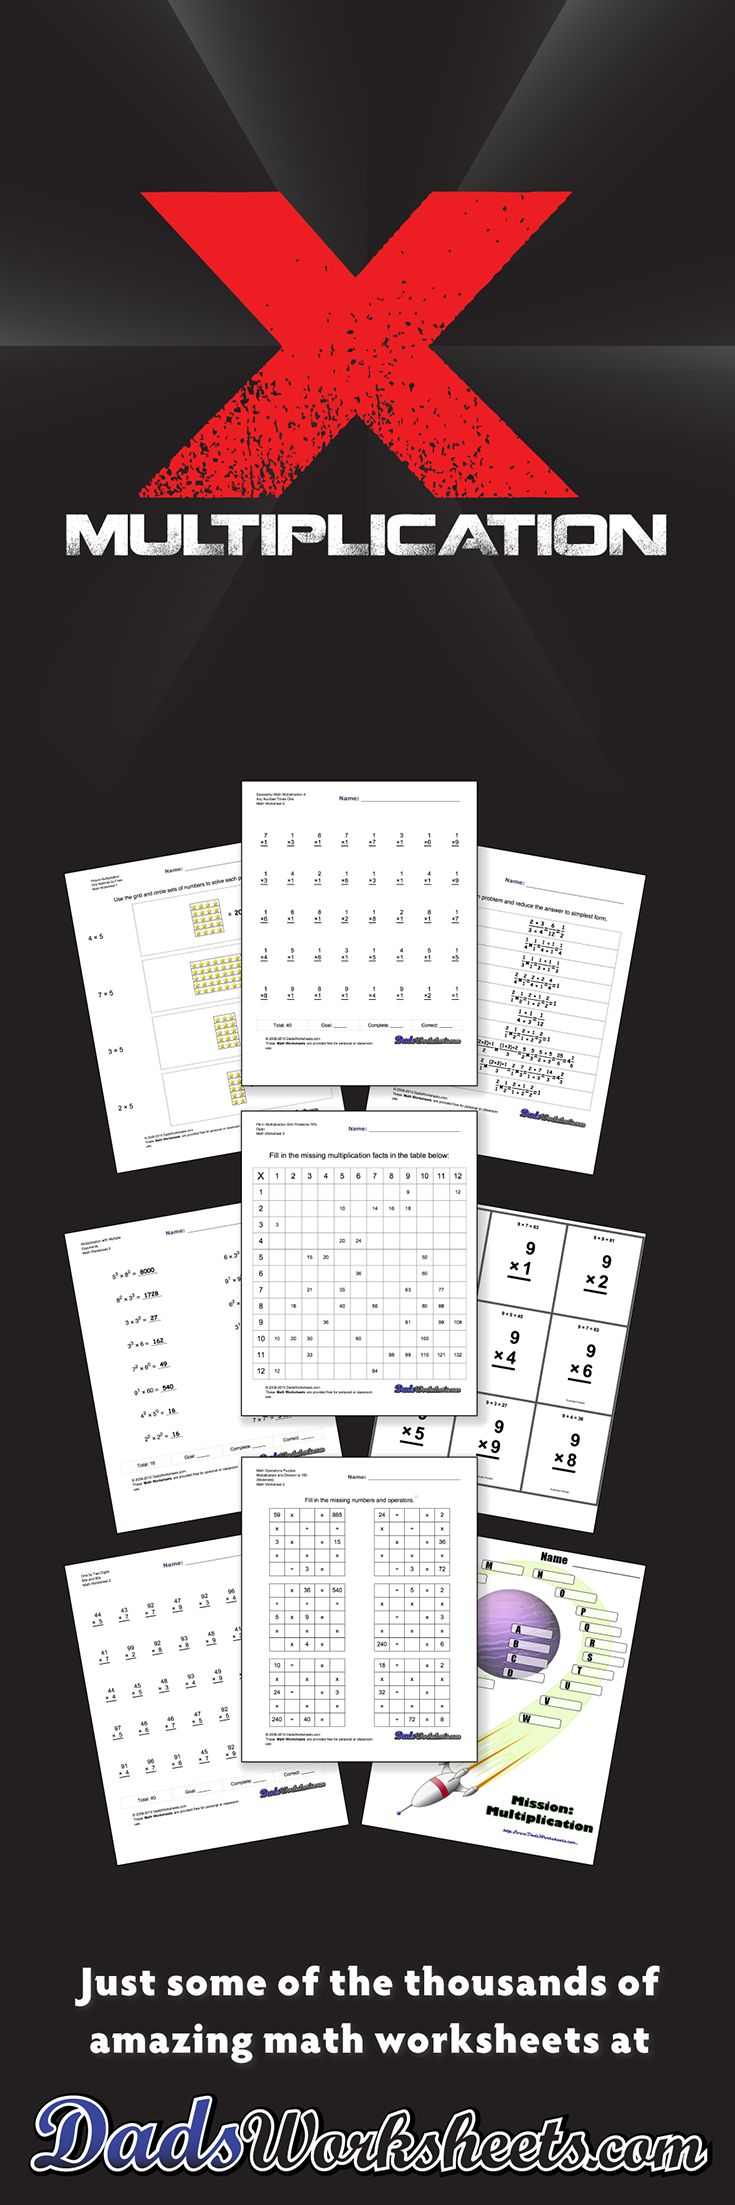 Best 25 multiplication facts worksheets ideas on pinterest multiplication worksheets including math facts flash cards multiplication charts and more instantly printable without signup or registration gamestrikefo Images